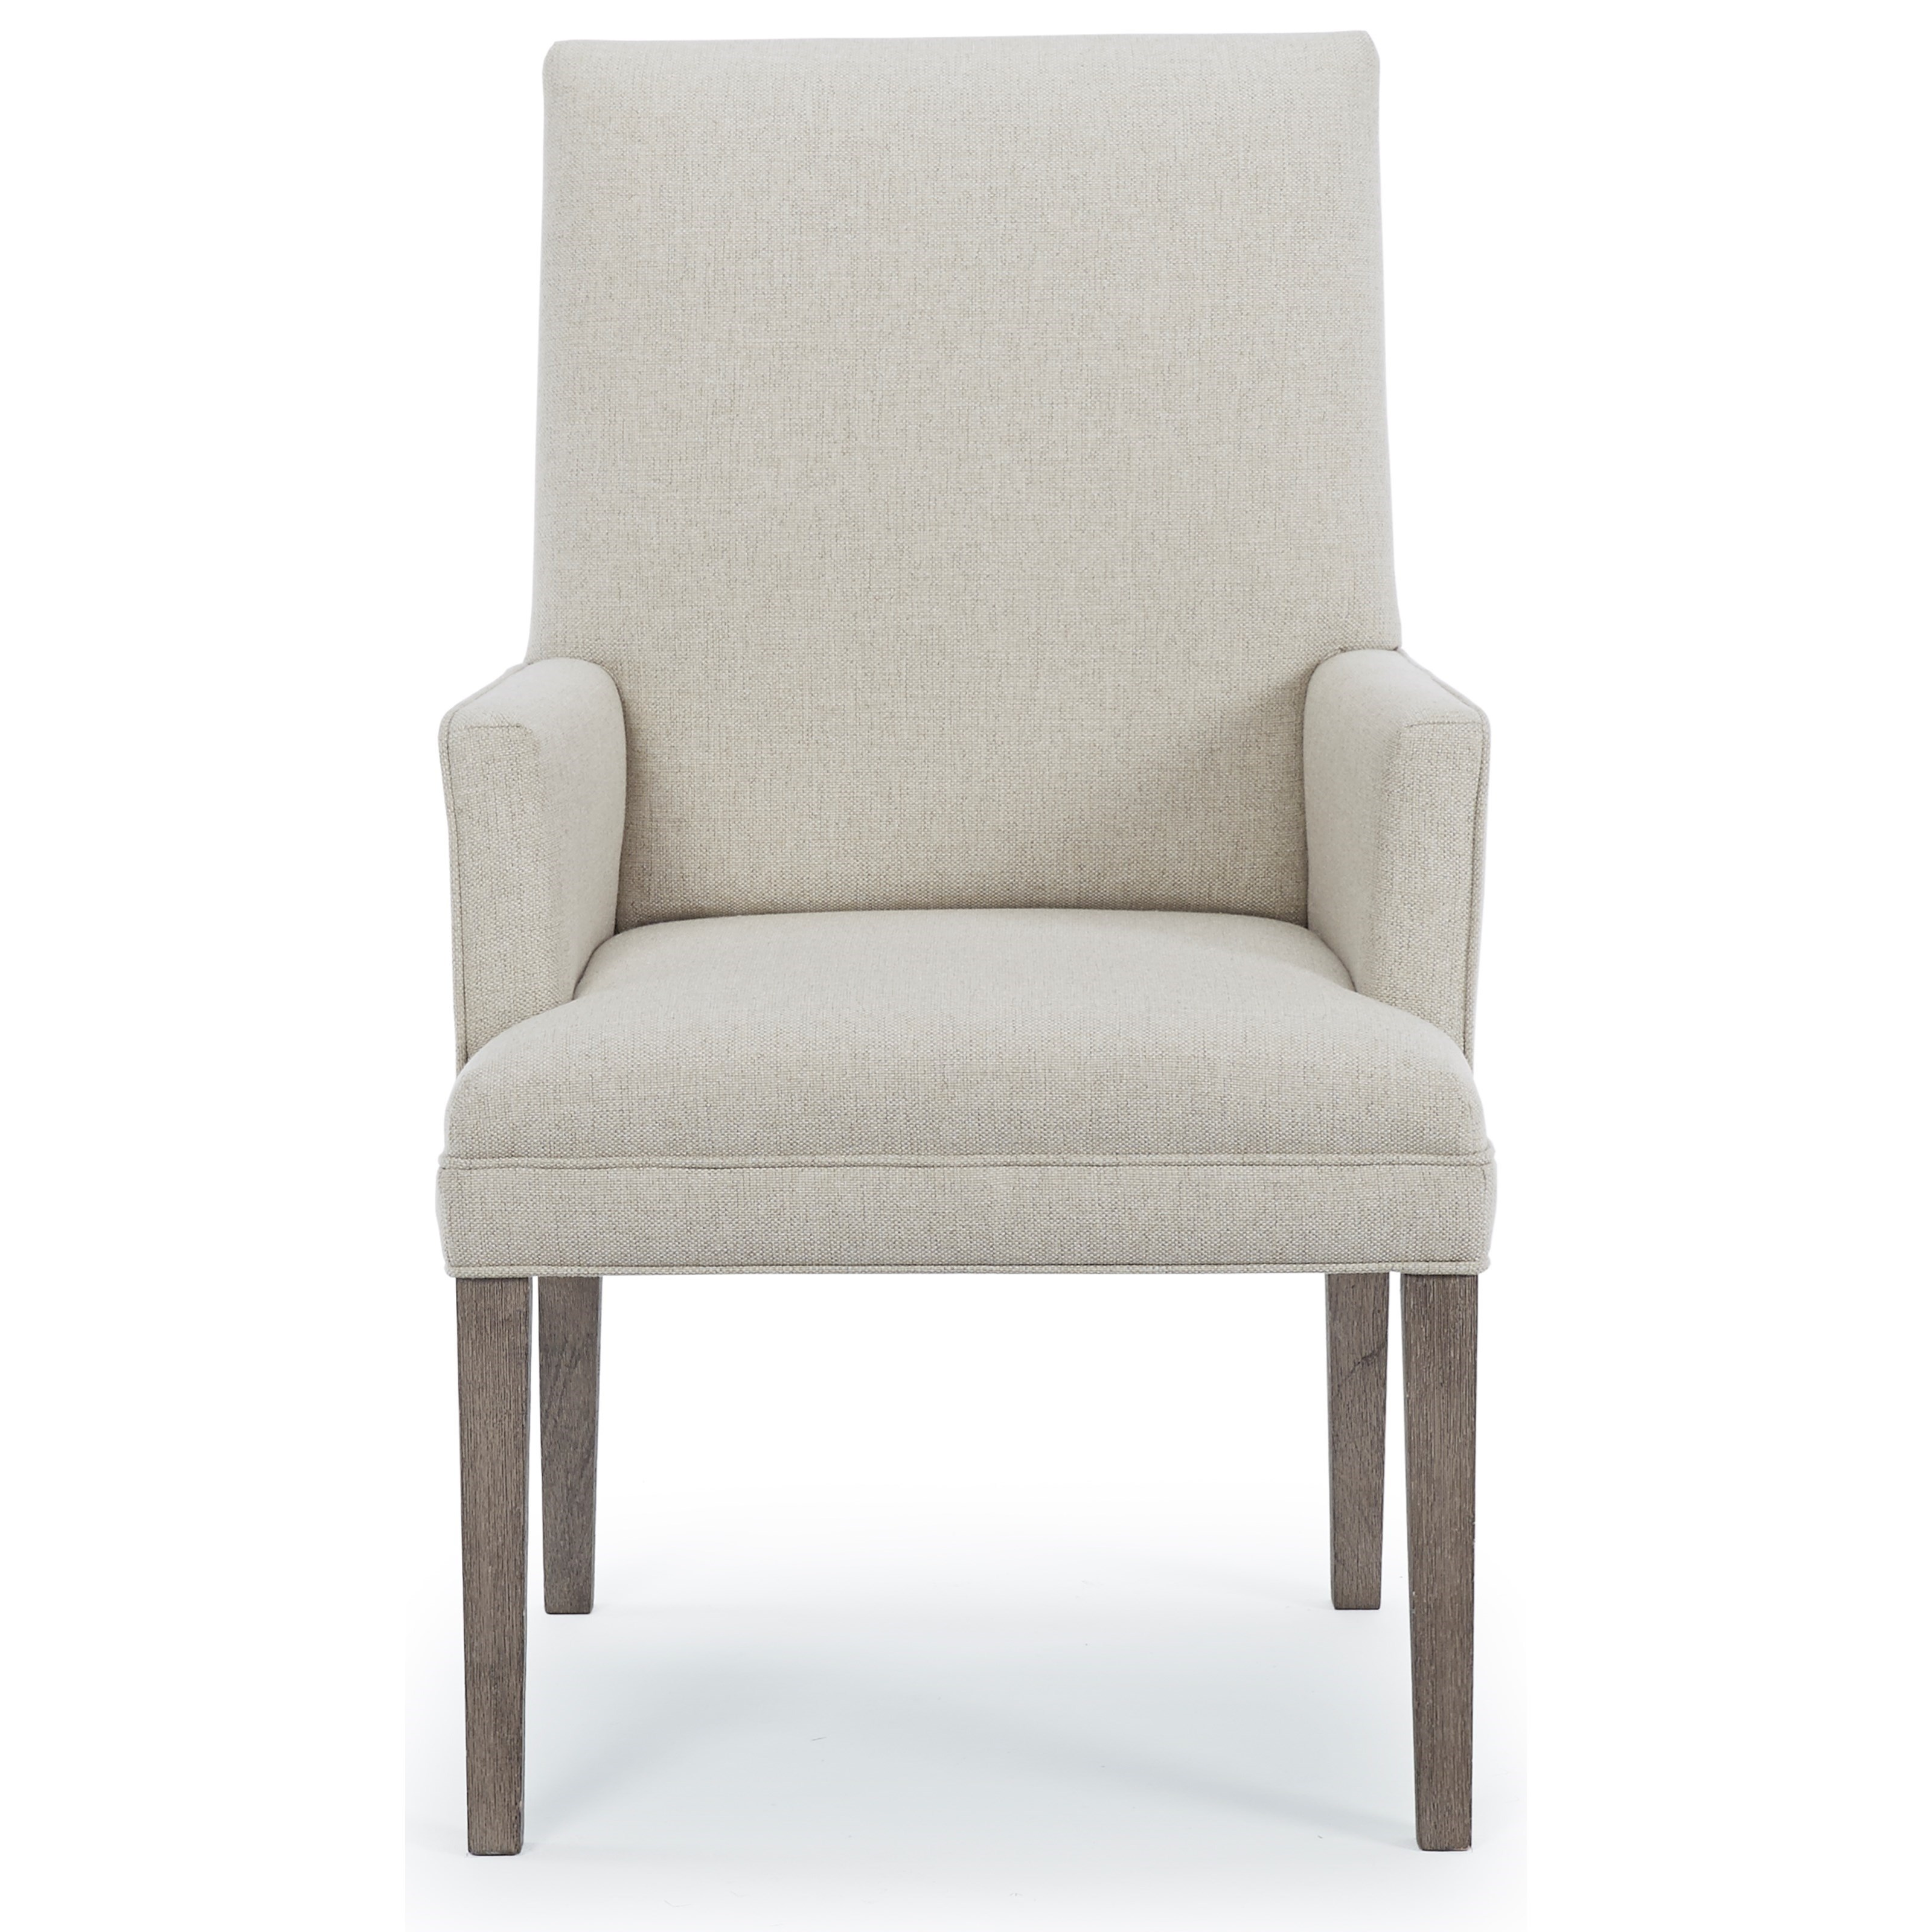 Best Upholstery Fabric For Dining Room Chairs: Best Home Furnishings Nonte Upholstered Captain's Dining